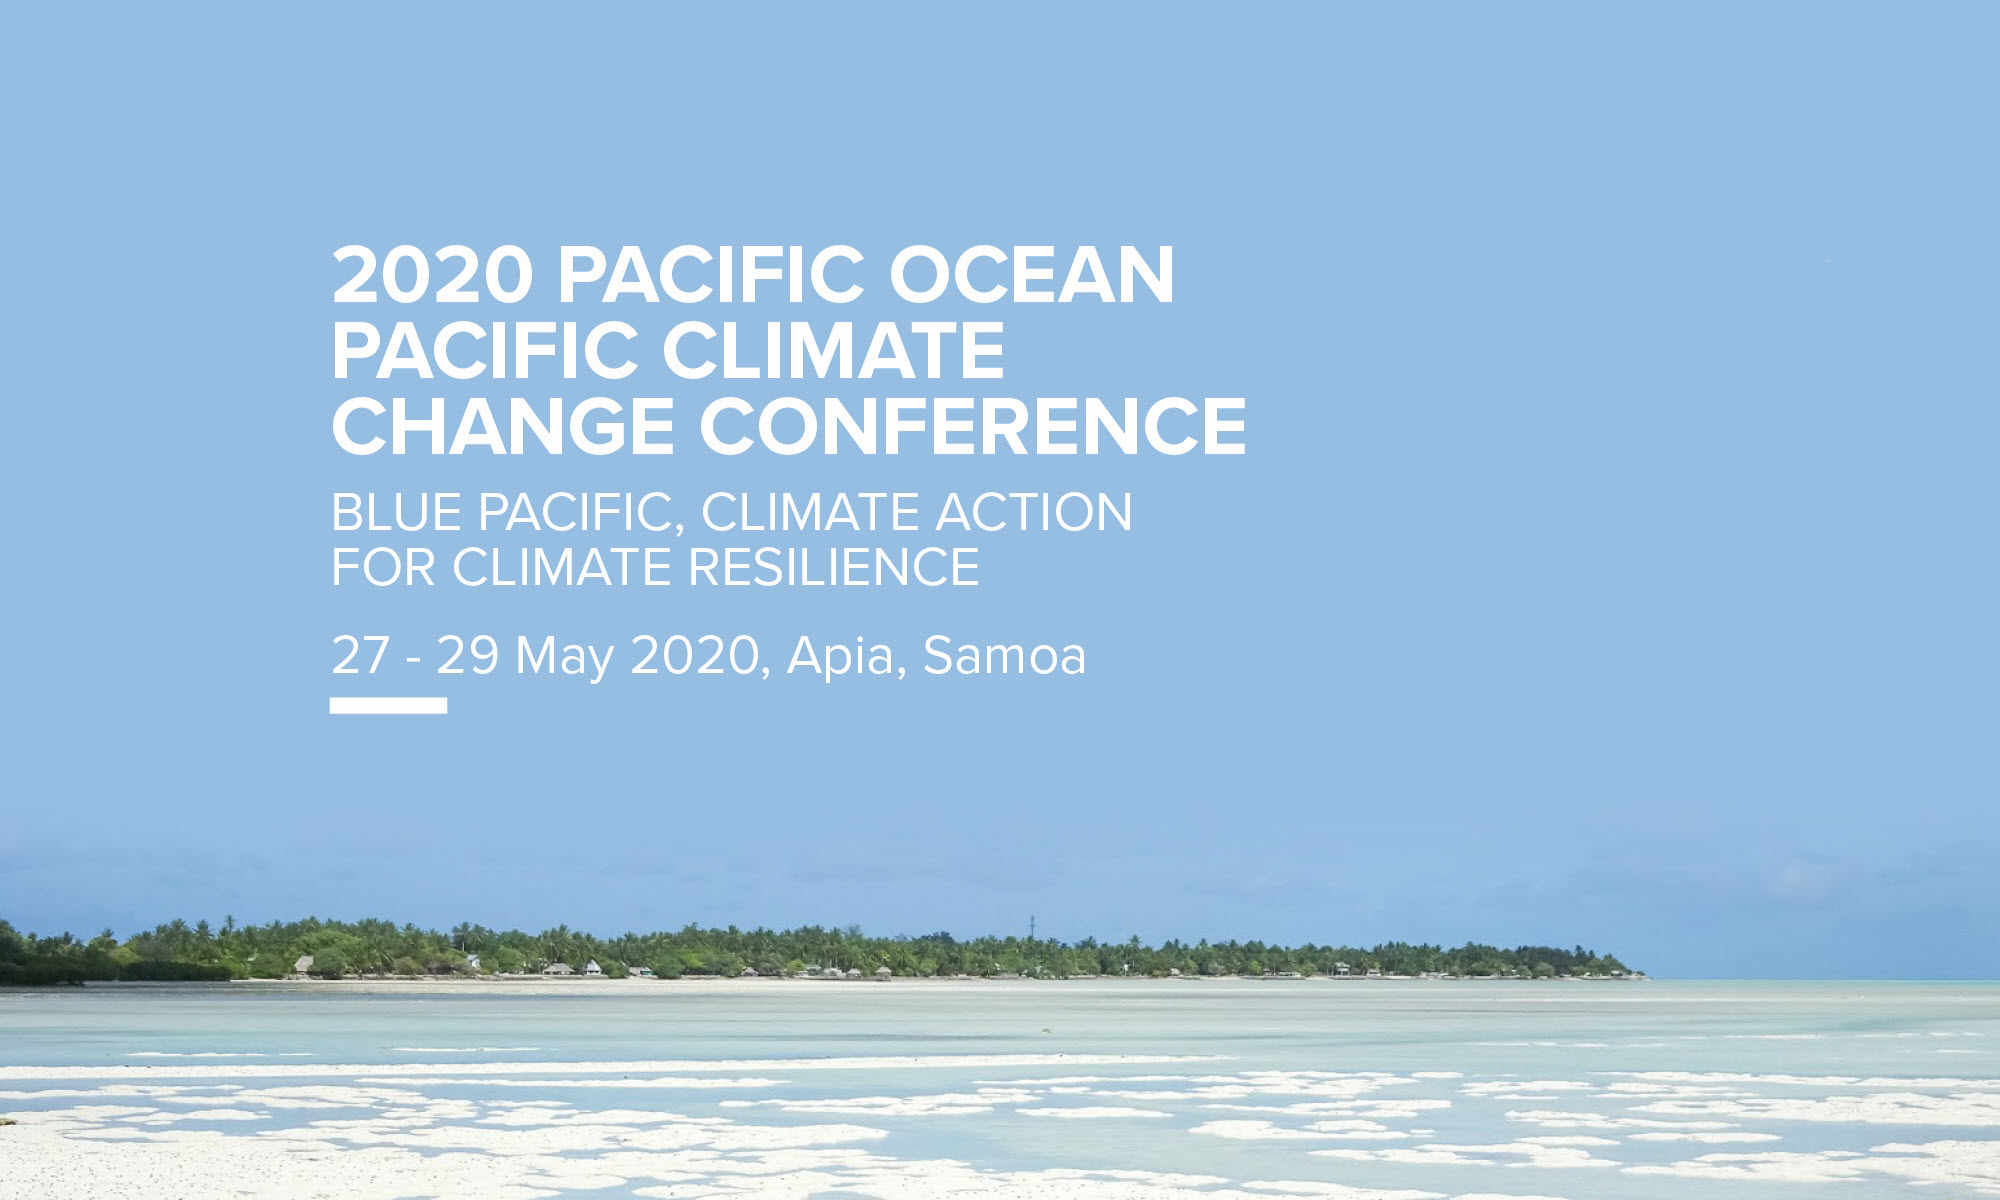 2020 Pacific Ocean Climate Change Conference